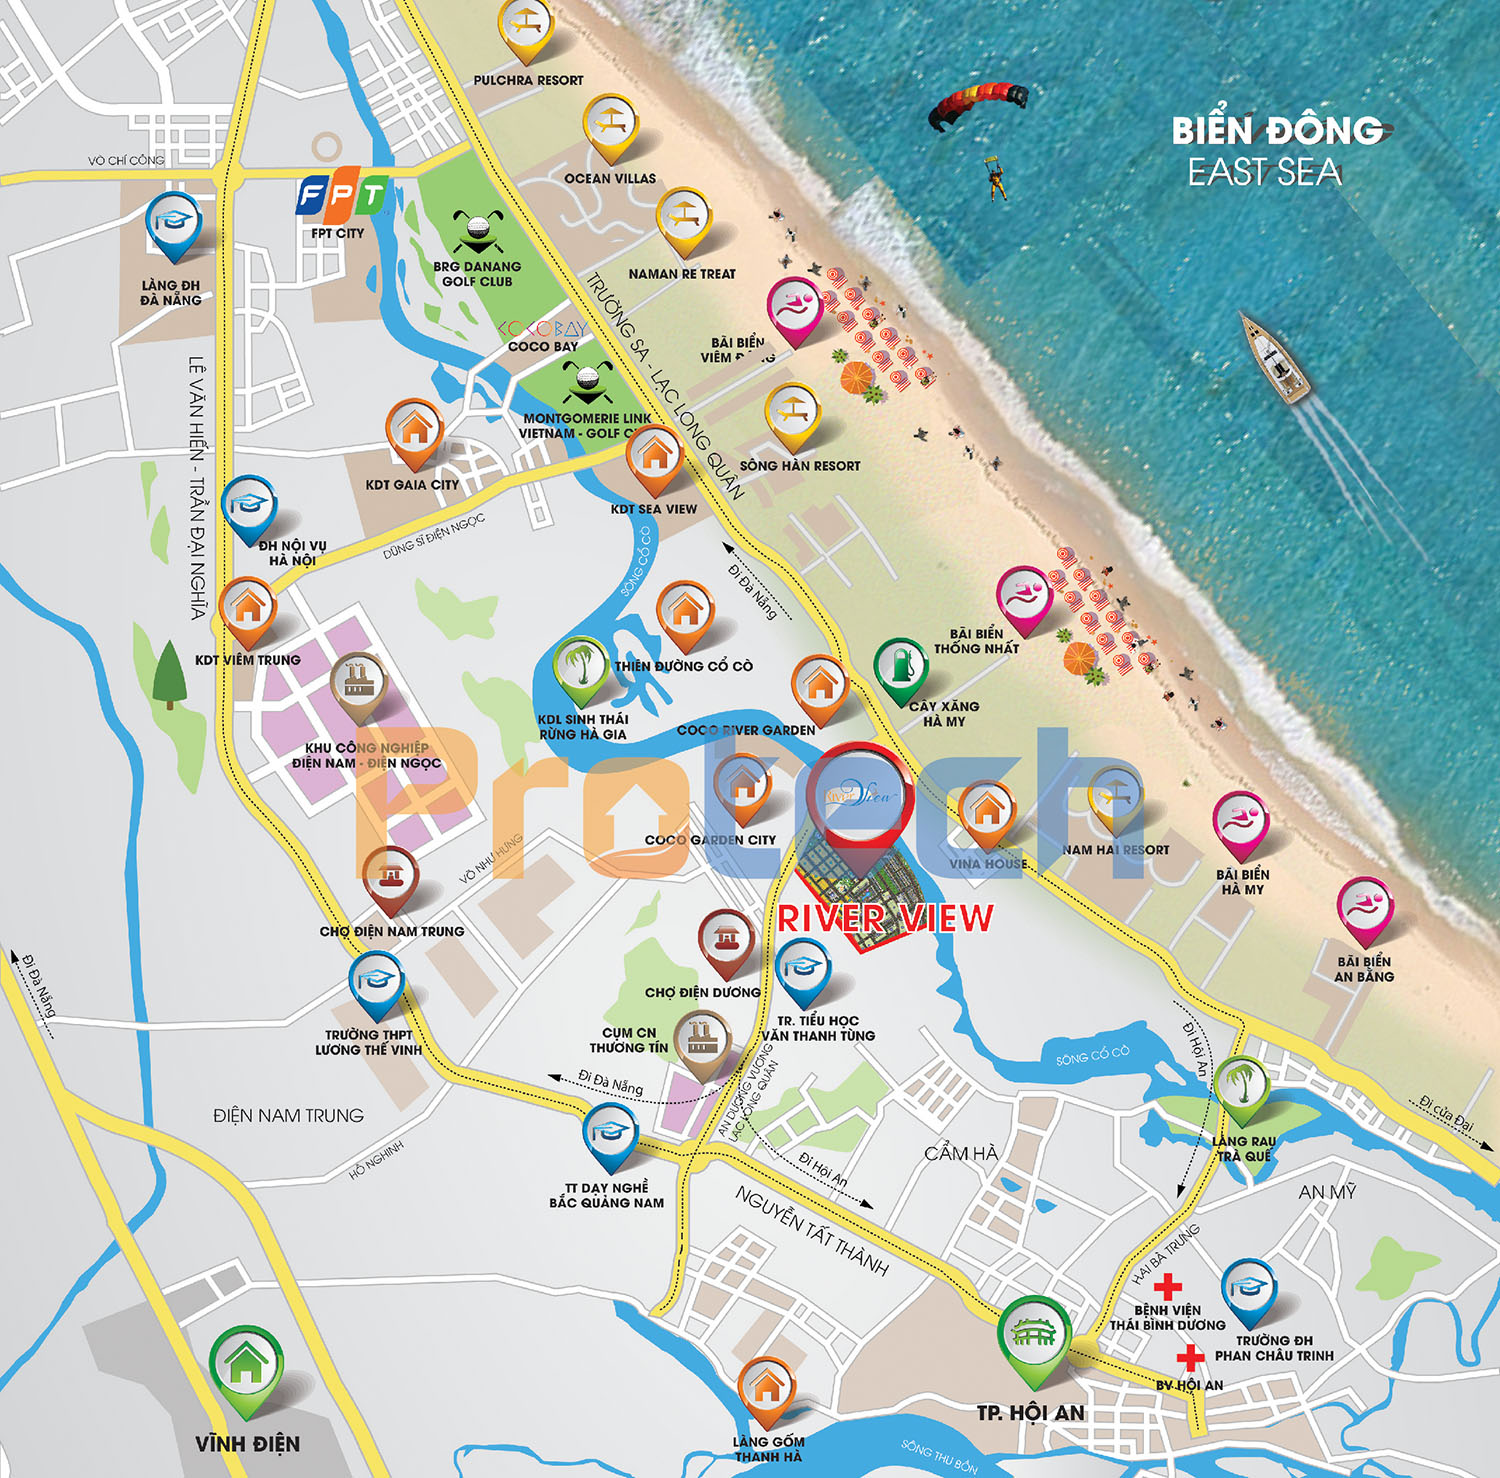 vi tri khu do thi river view